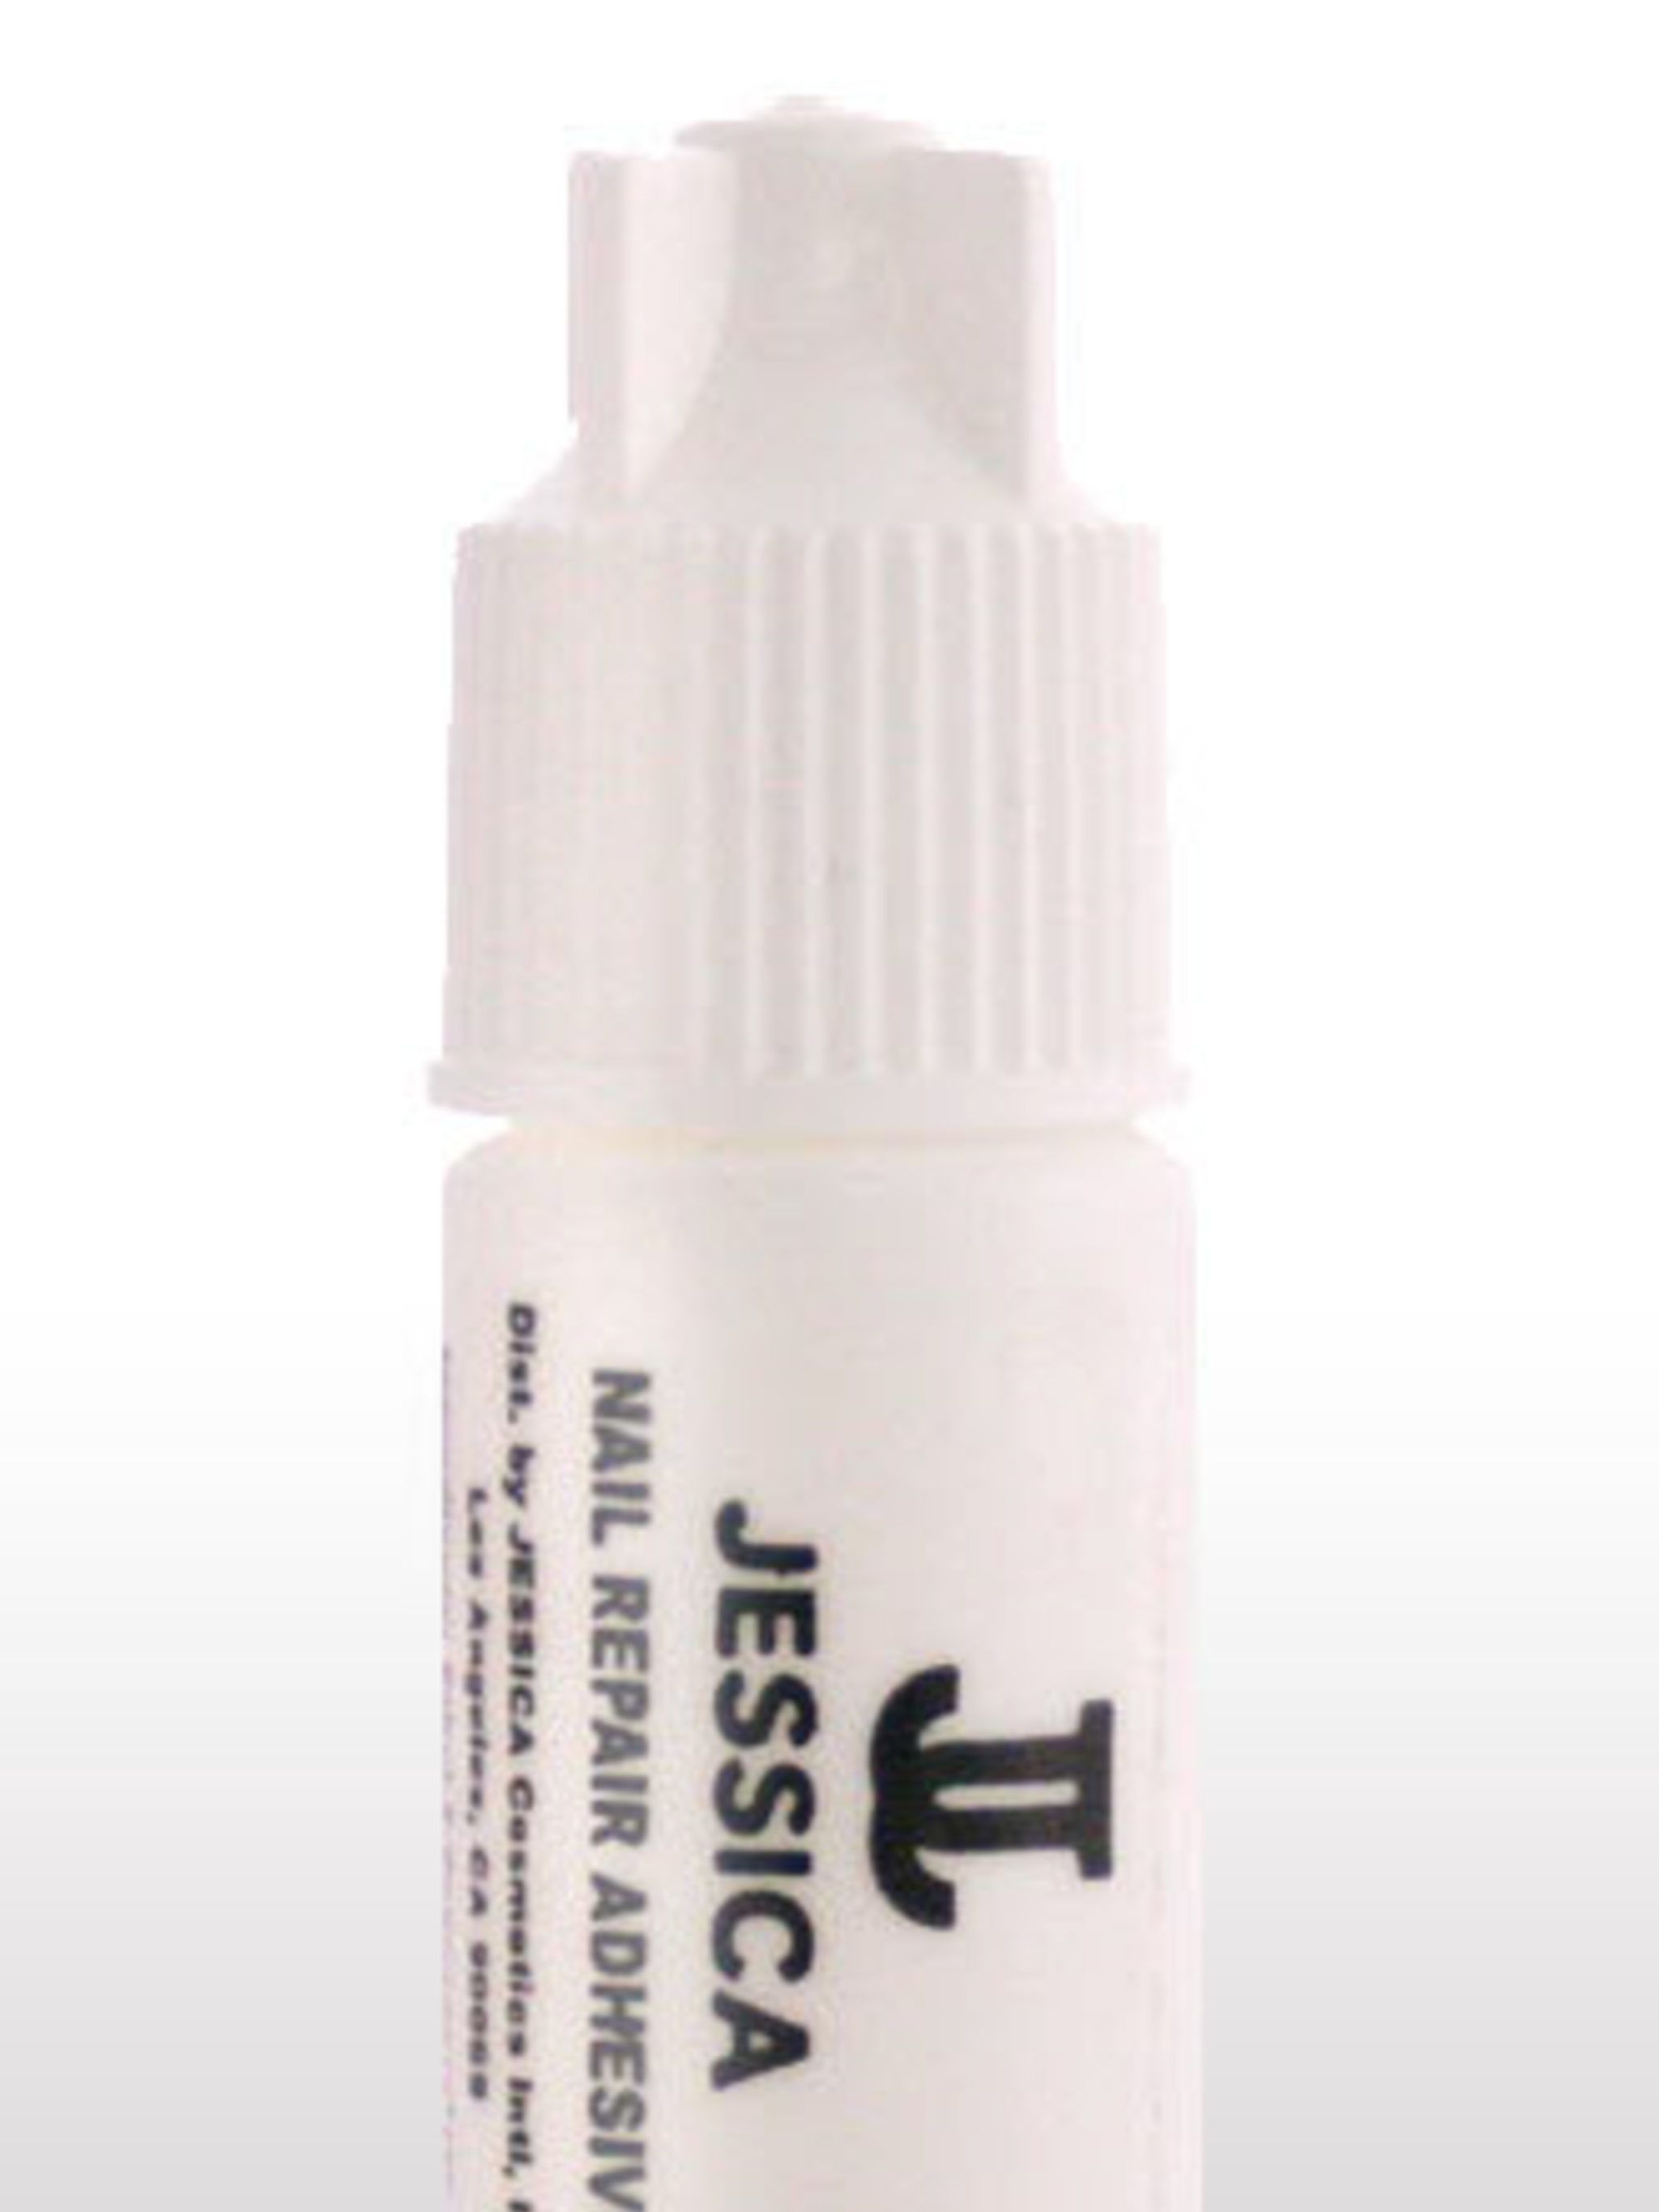 "<p>A broken nail is sure to ruin your manicure and snag on everything. Prevent full-on breakages with Jessica's Repair Adhesive and use it to patch up any splits and cracks in your nail too. </p><p><a href=""http://www.jessicacosmetics.co.uk/"">Jessica</a>"